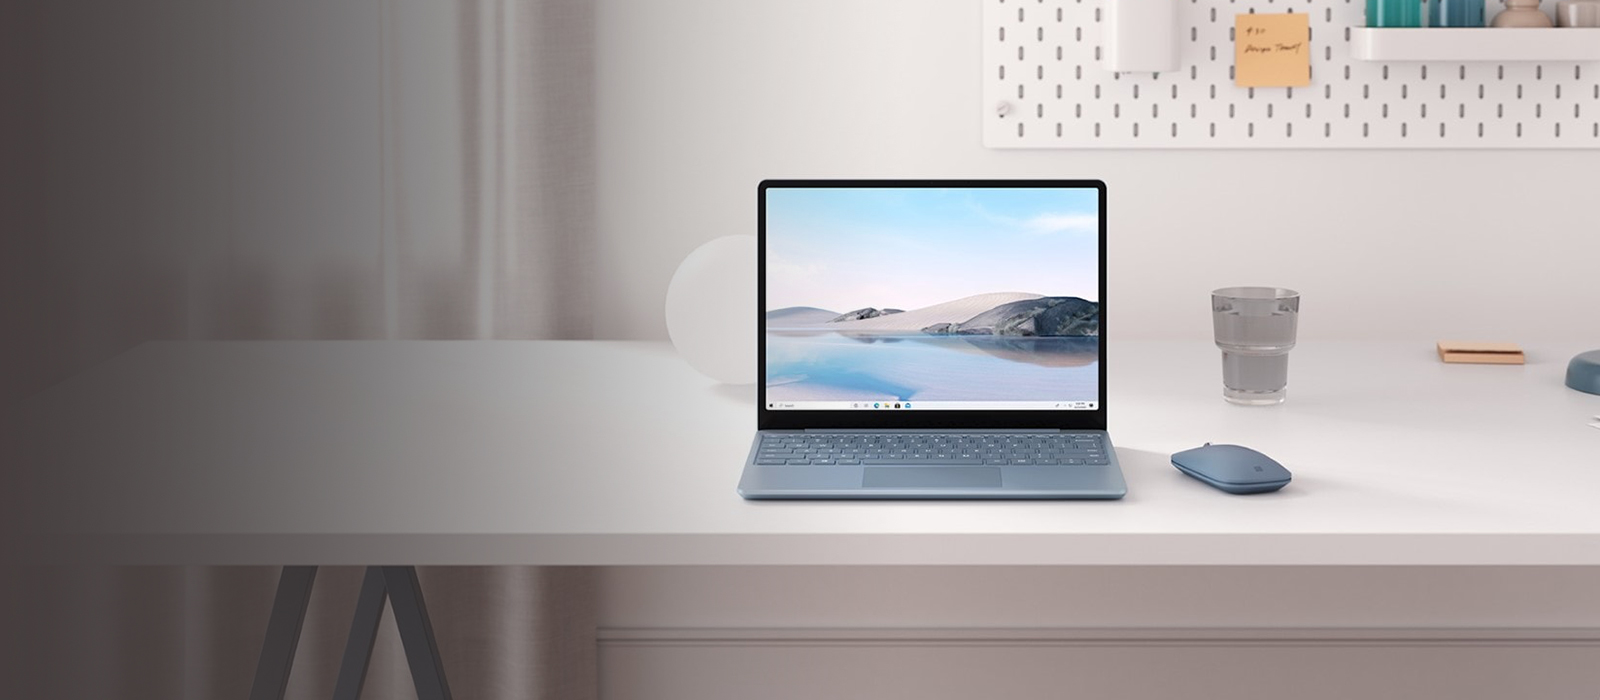 The Surface Laptop Go in ice blue is placed on a desk